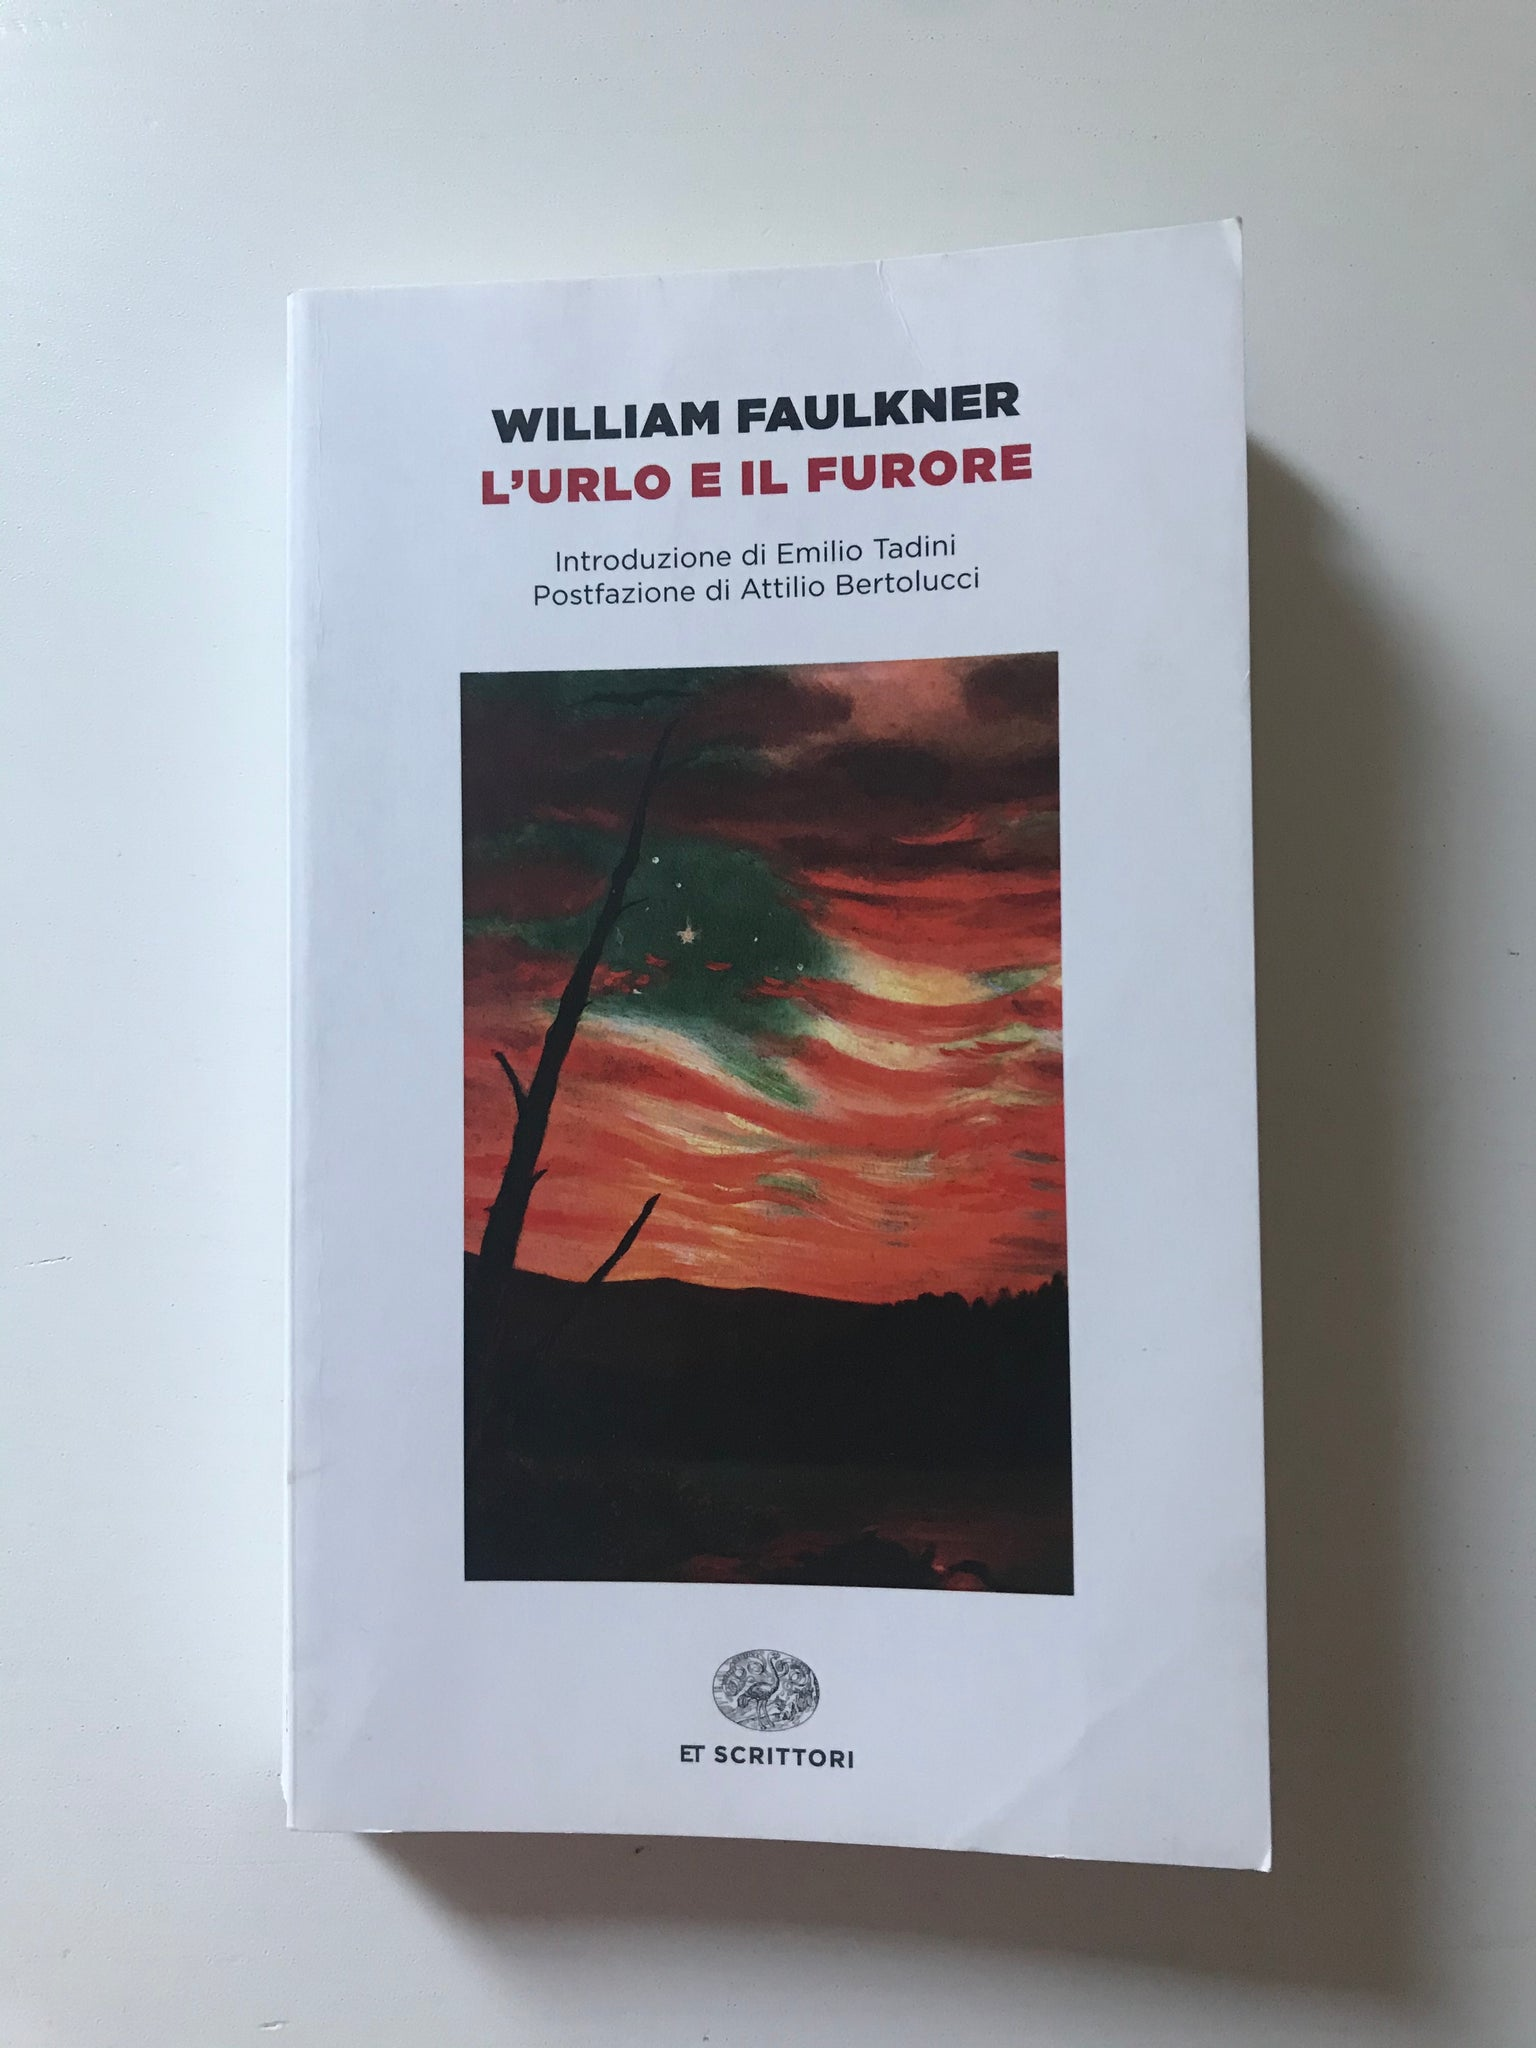 William Faulkner - L'urlo e il furore